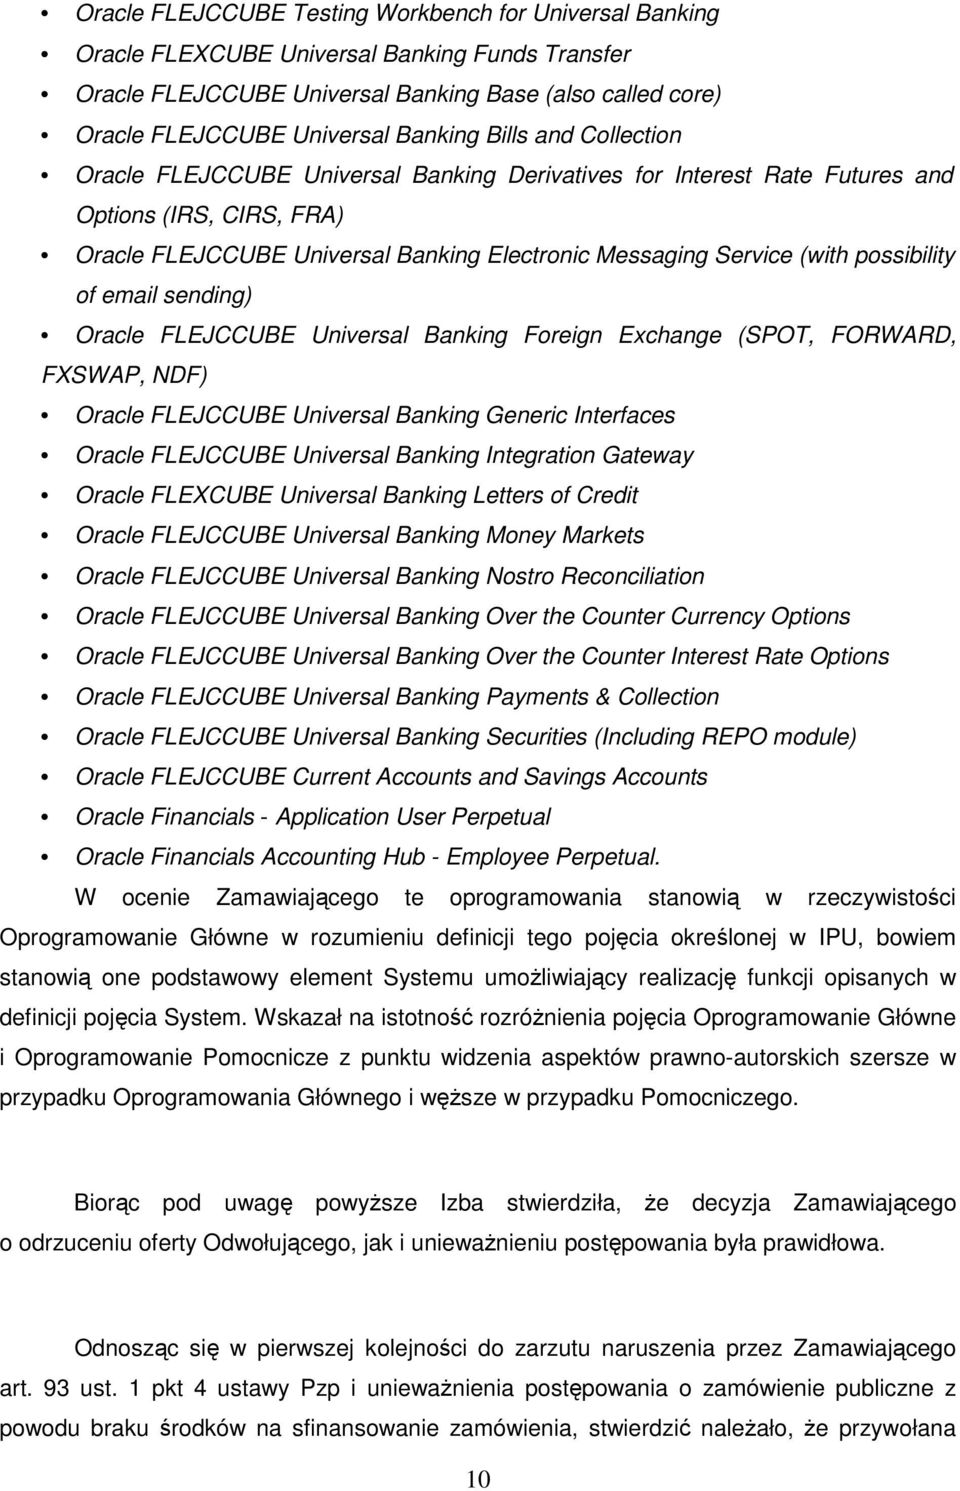 possibility of email sending) Oracle FLEJCCUBE Universal Banking Foreign Exchange (SPOT, FORWARD, FXSWAP, NDF) Oracle FLEJCCUBE Universal Banking Generic Interfaces Oracle FLEJCCUBE Universal Banking